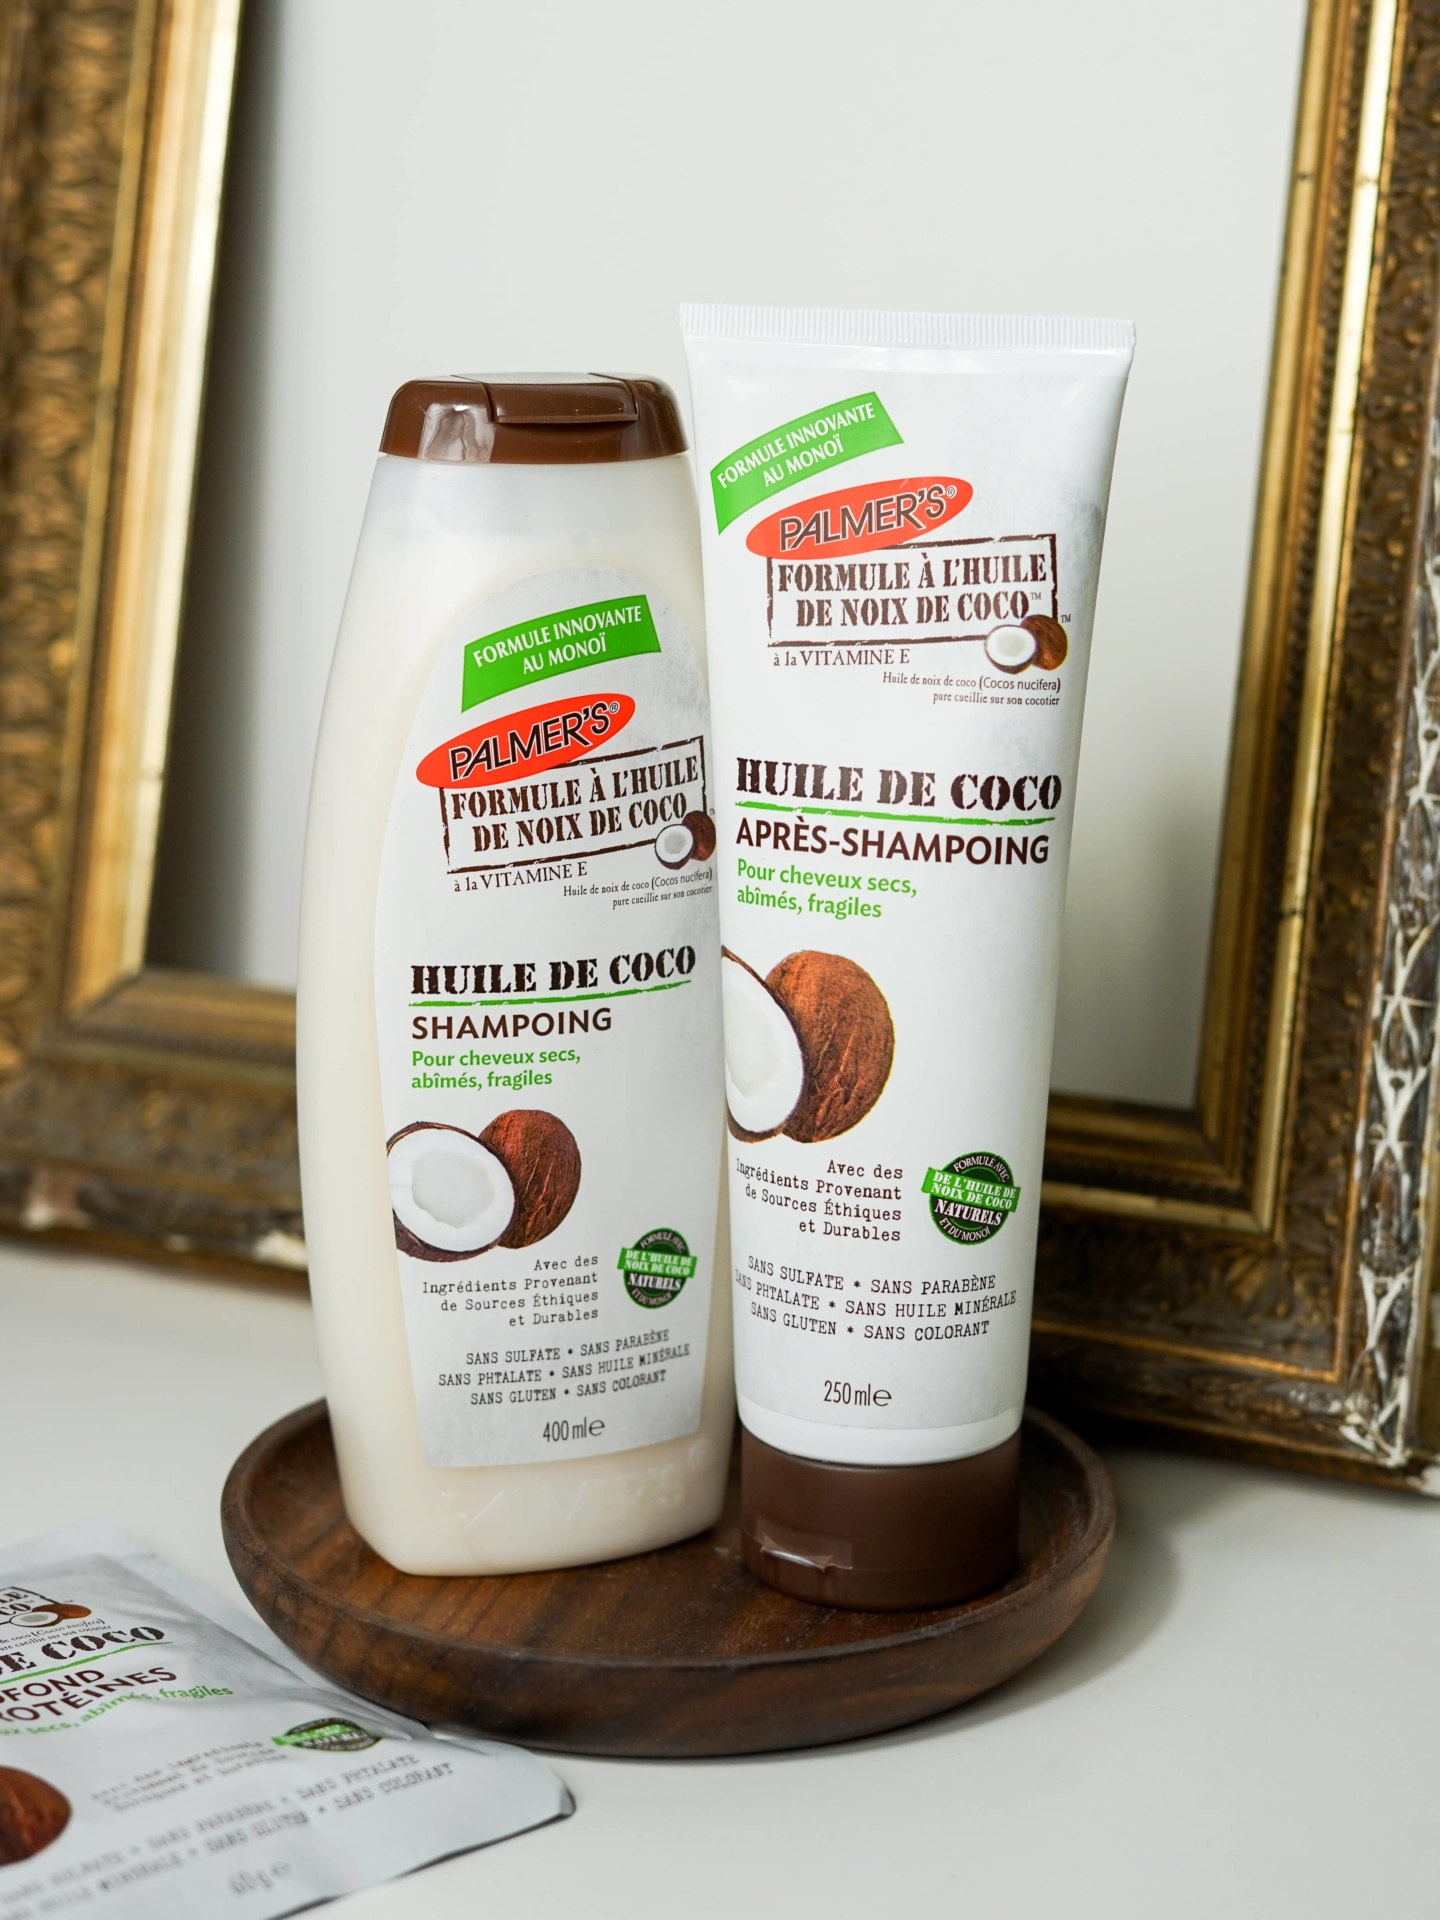 Palmers avis shampooing coco cheveux shampooing après shampoing